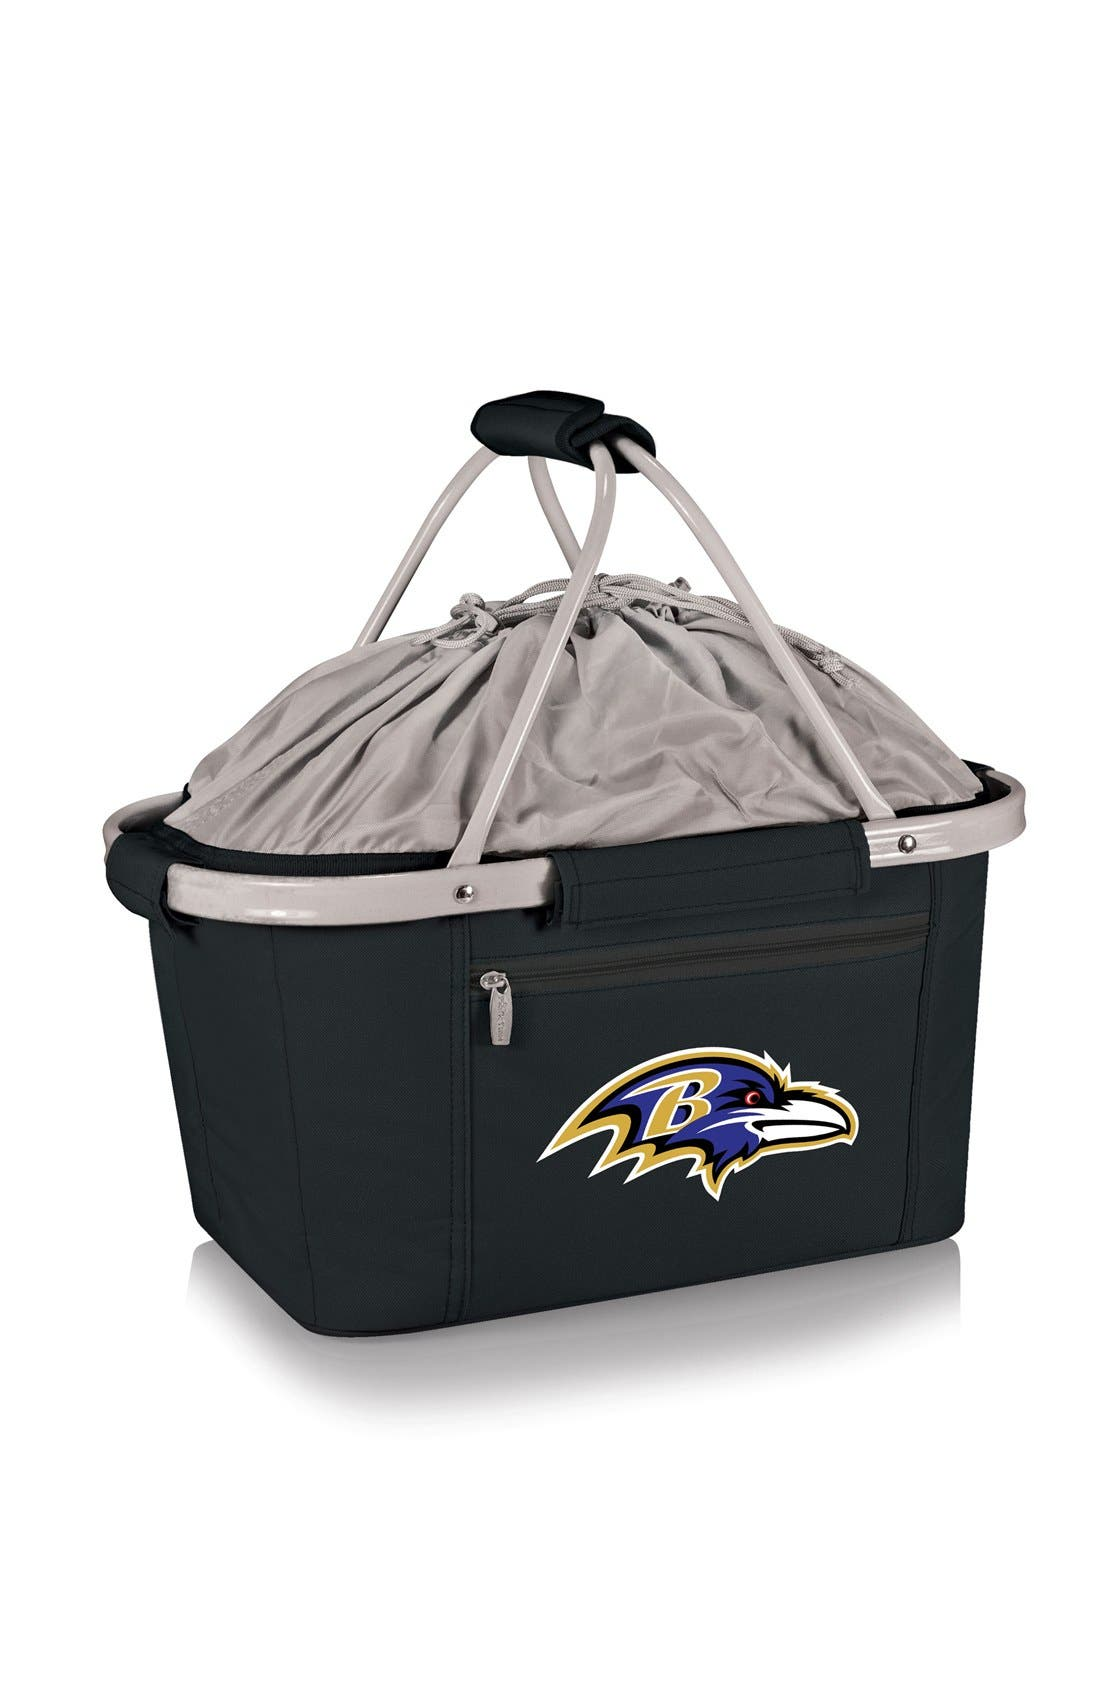 Main Image - Picnic Time Metro NFL Collapsible Insulated Basket